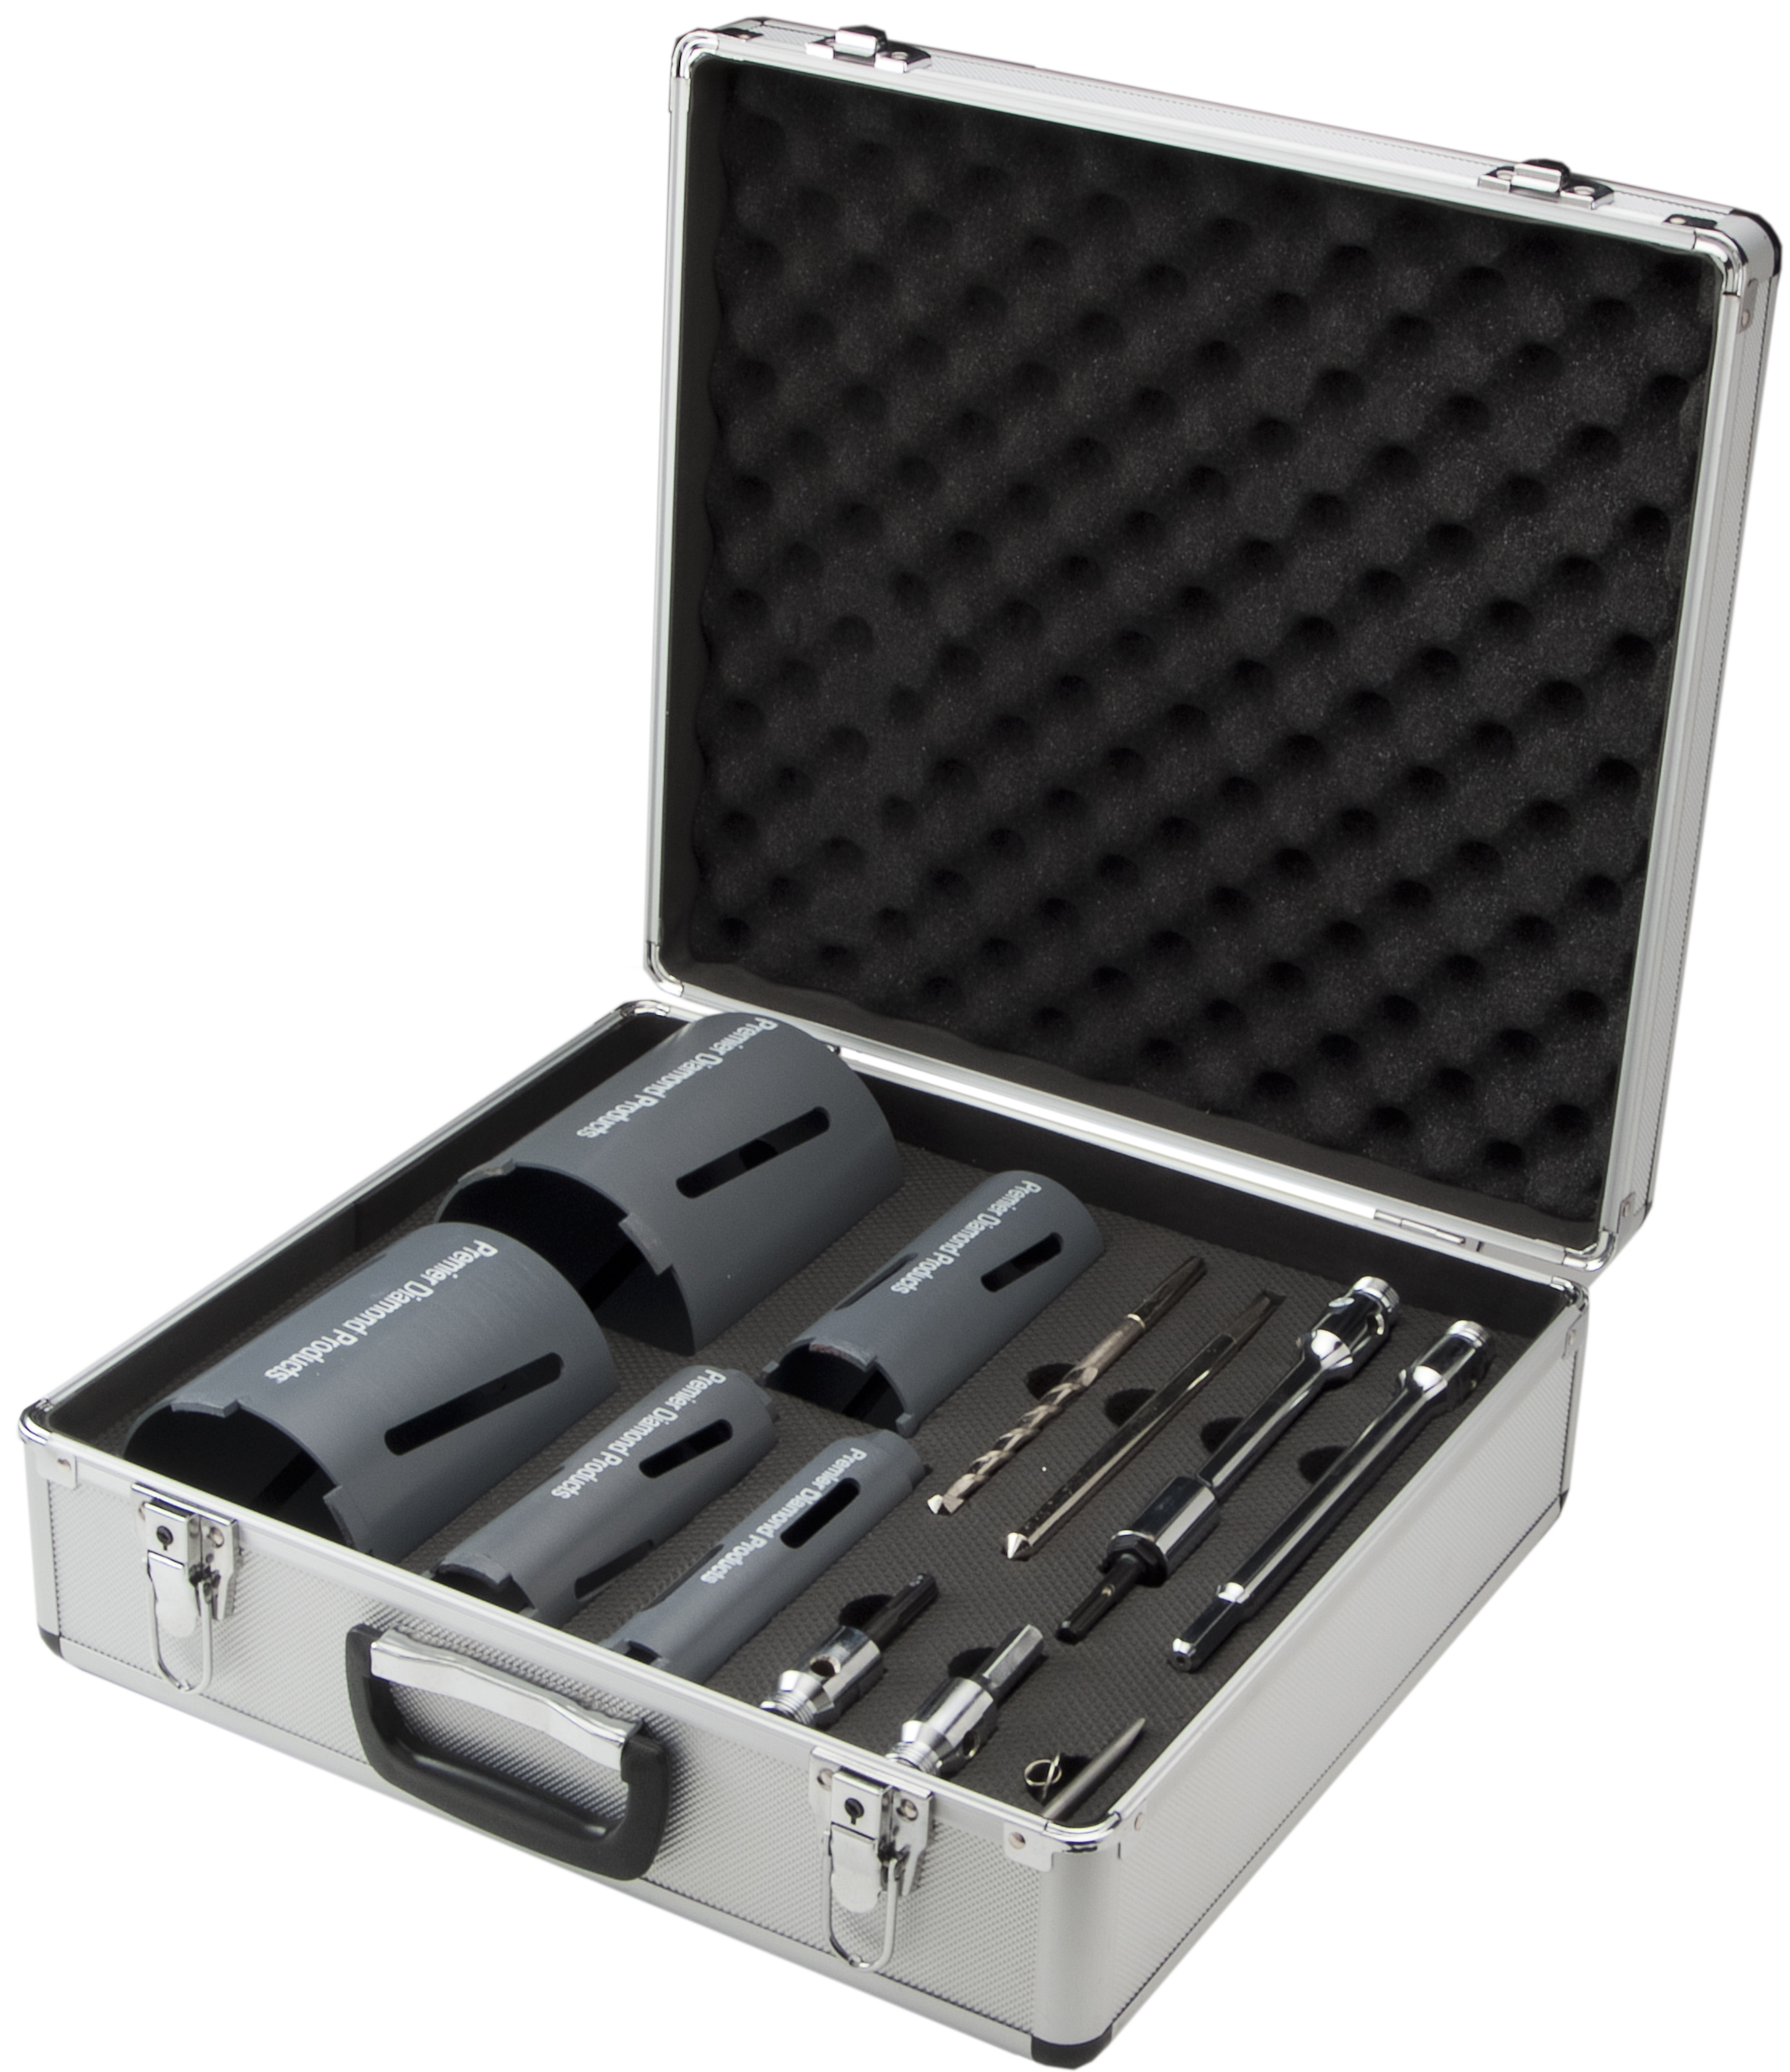 P4DC dry diamond core kit with a variety of different sized cores and attachments in a foam filled protective suitcase